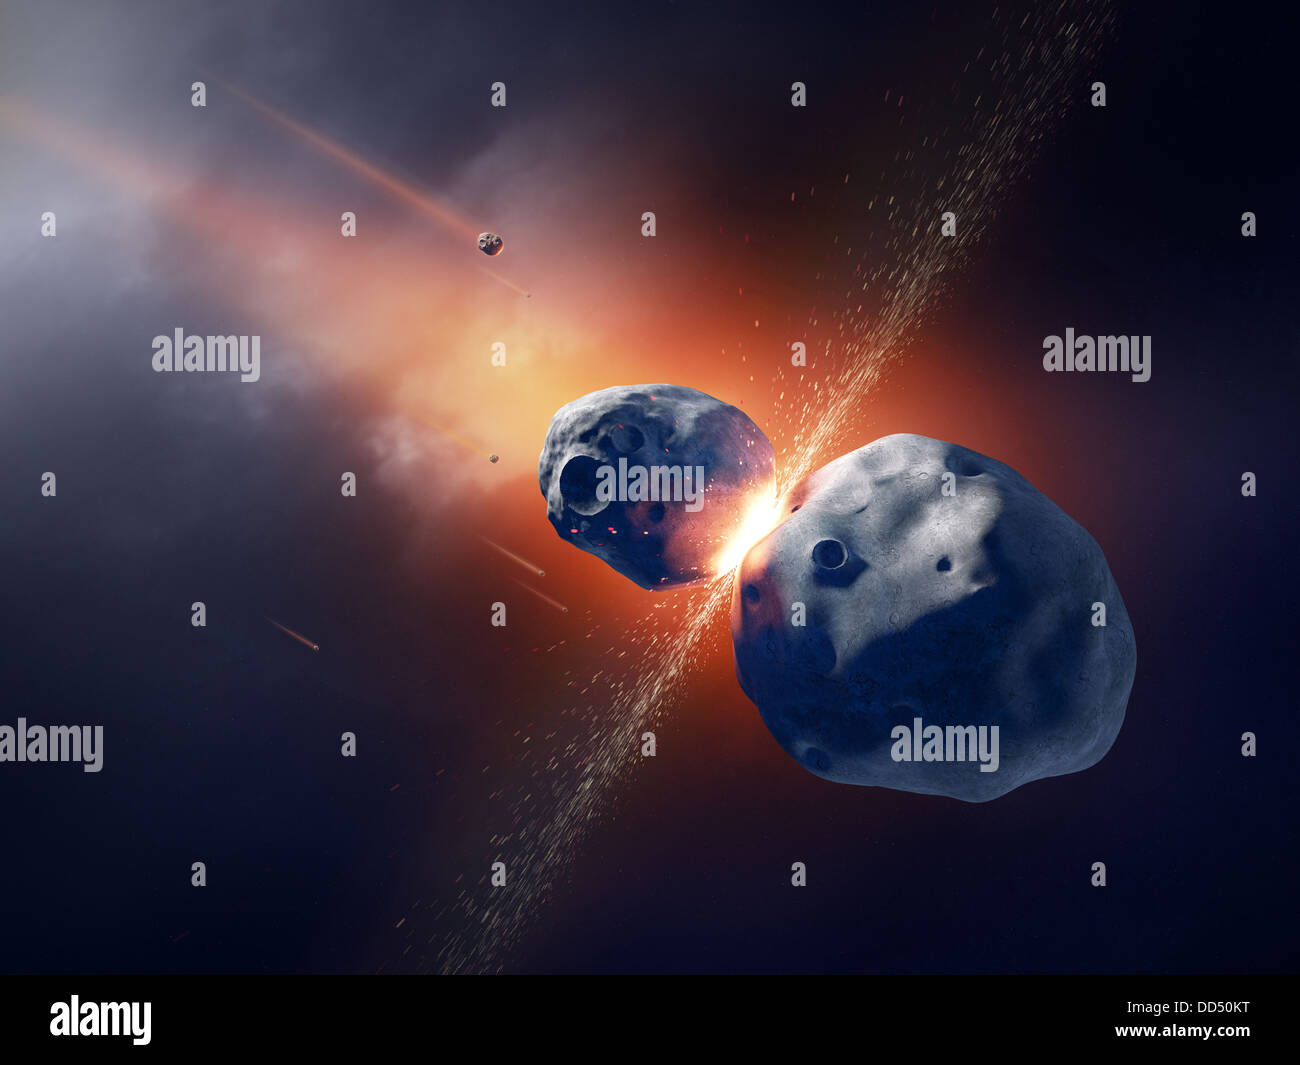 Asteroids collide and explode in deep space - Stock Image